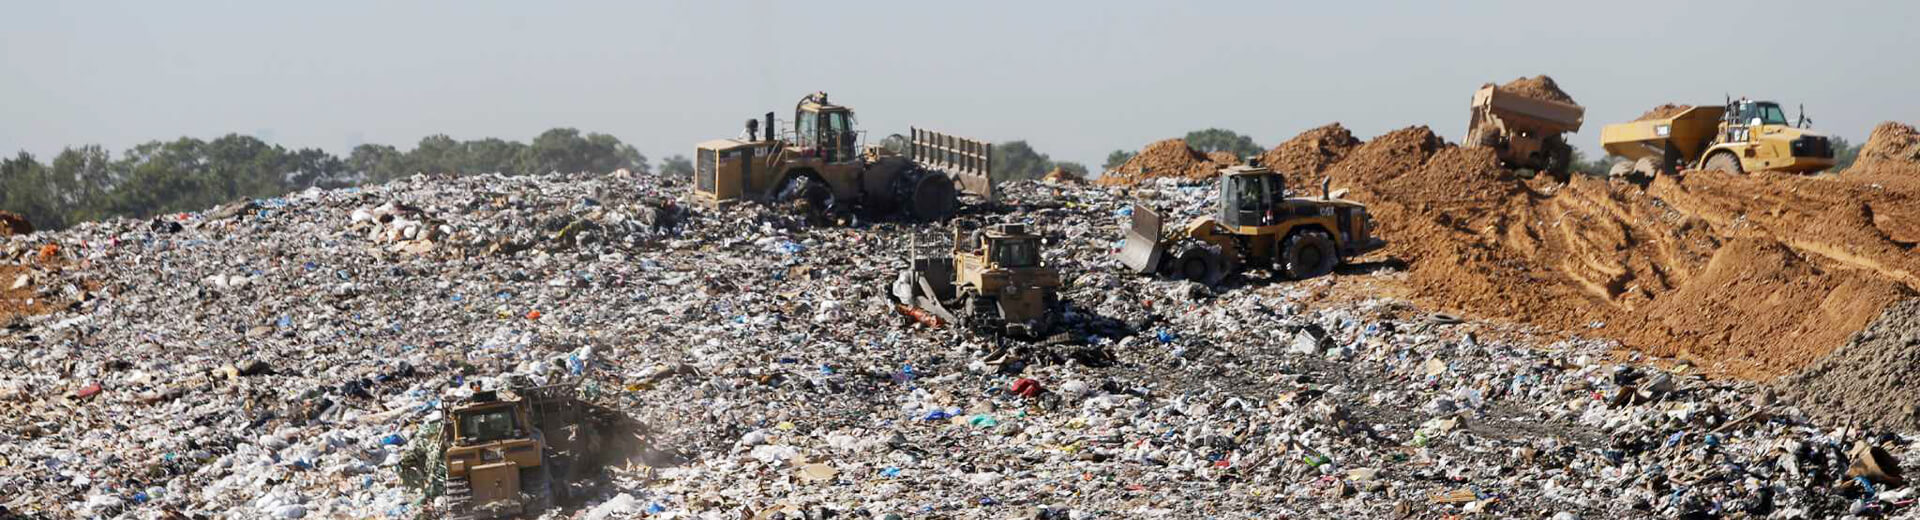 Advantages of the LandPac for Landfills